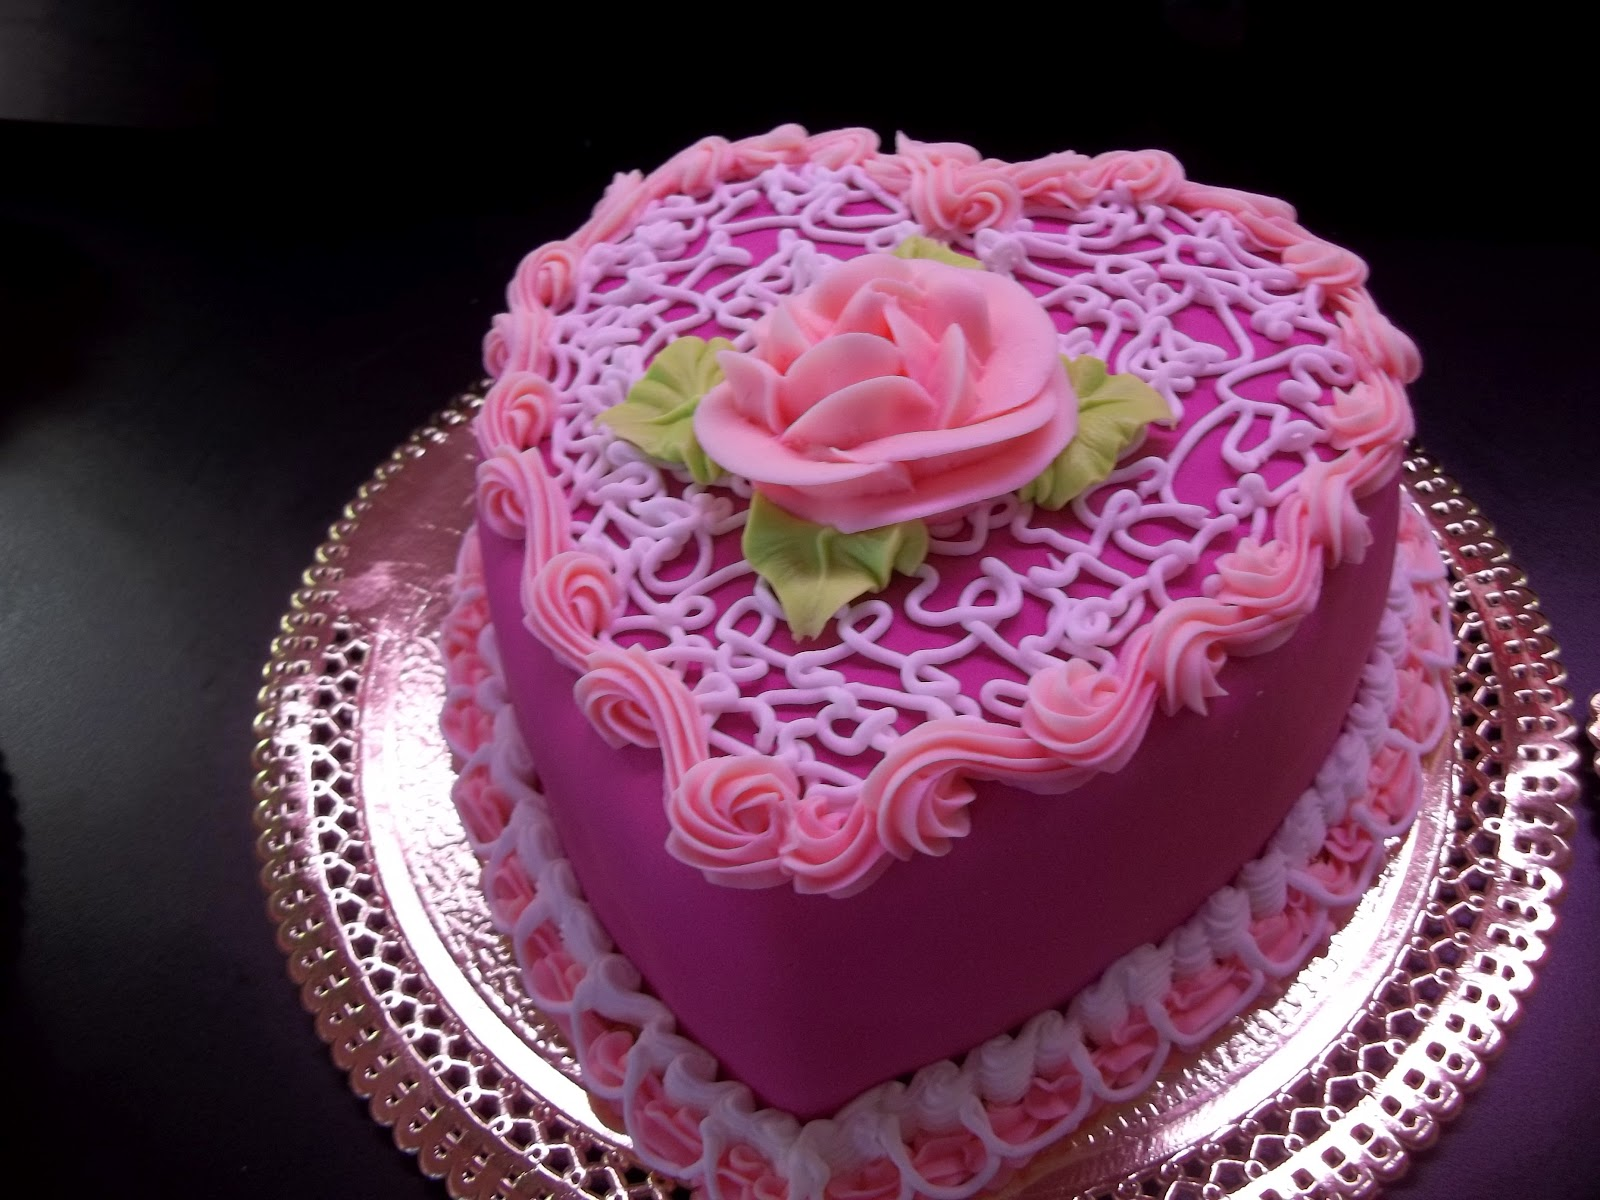 Birthday Cake Designs Love : Cake [grrls] cakery: Luxurious Birthday cakes